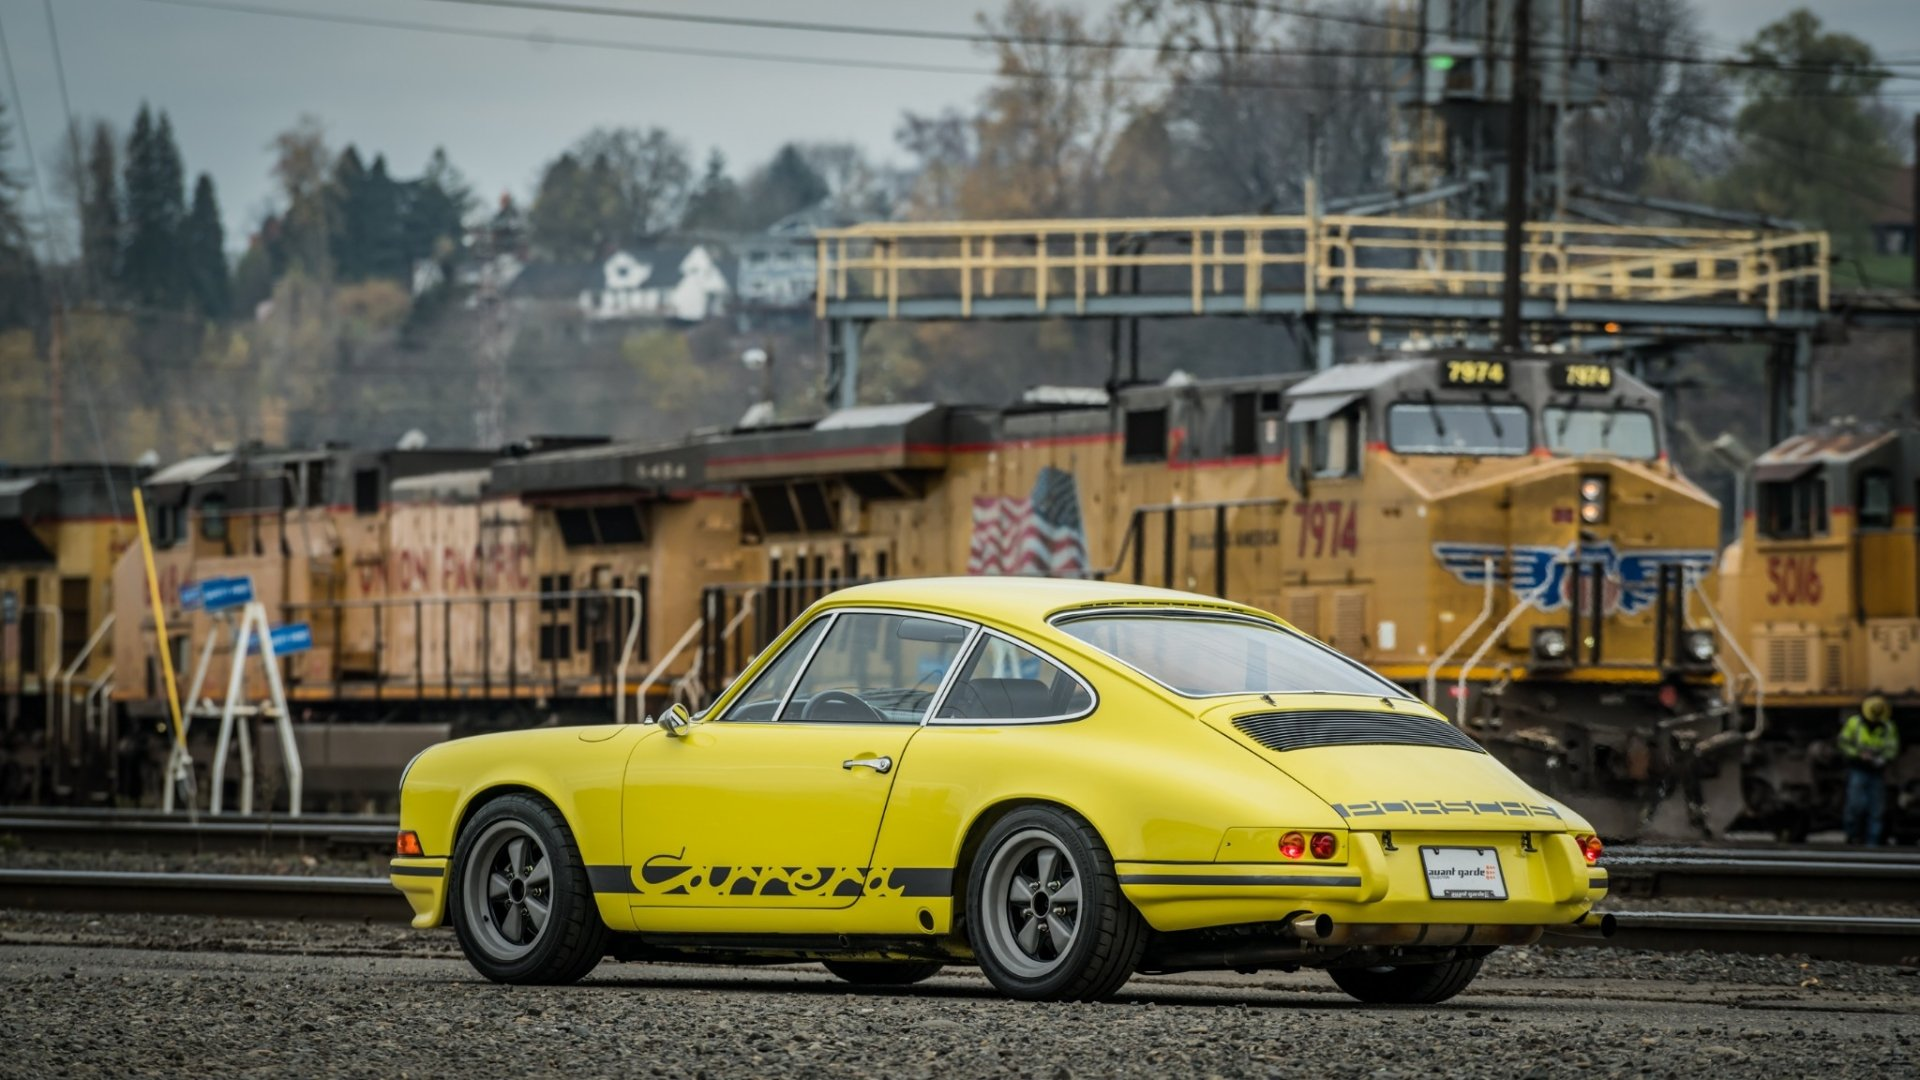 Vehicles - Porsche 911 Carrera T  Sport Car Yellow Car Old Car Car Train Wallpaper